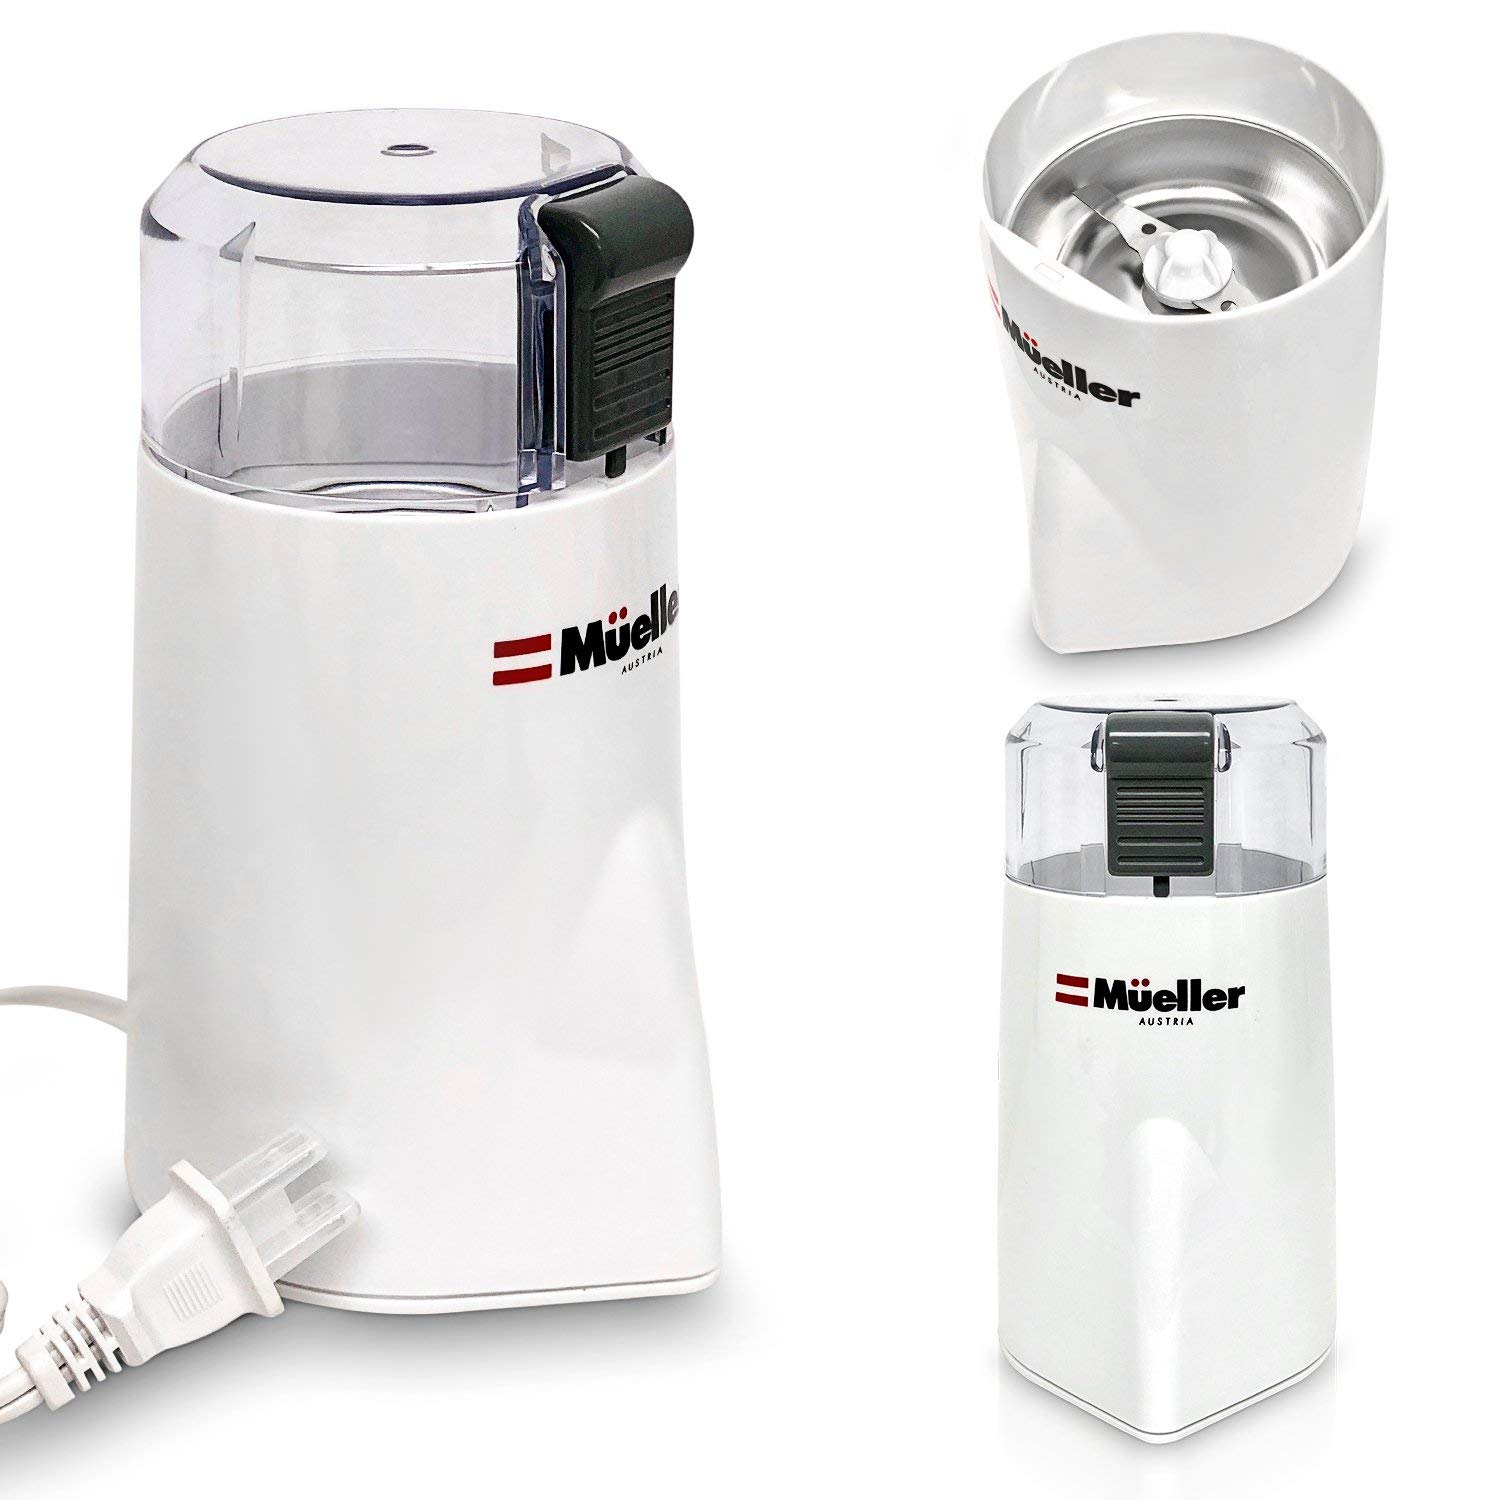 Mueller HyperGrind Precision Electric Coffee Grinder Mill with Large Grinding Capacity and HD Motor also for Spices, Herbs, Nuts, Grains and More by Mueller Austria (Image #4)